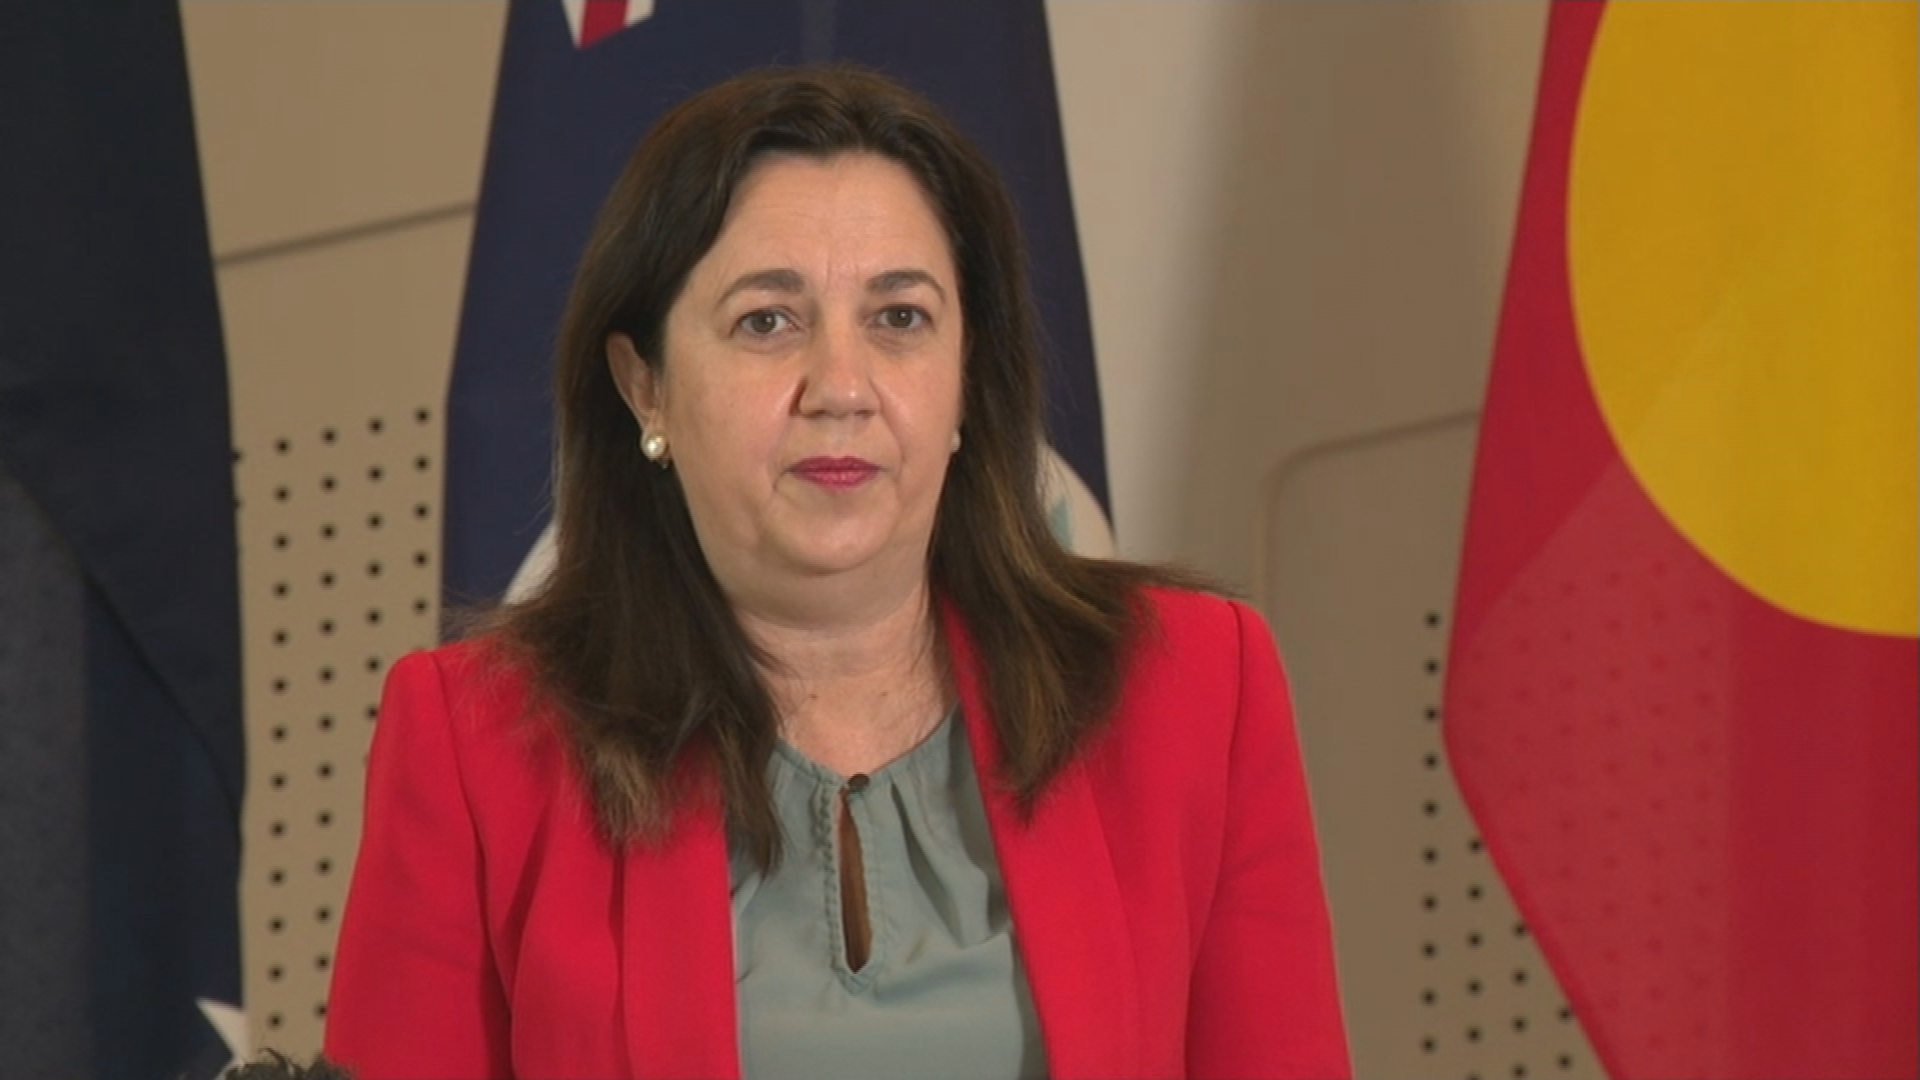 Queensland border closes to parts of Greater Sydney